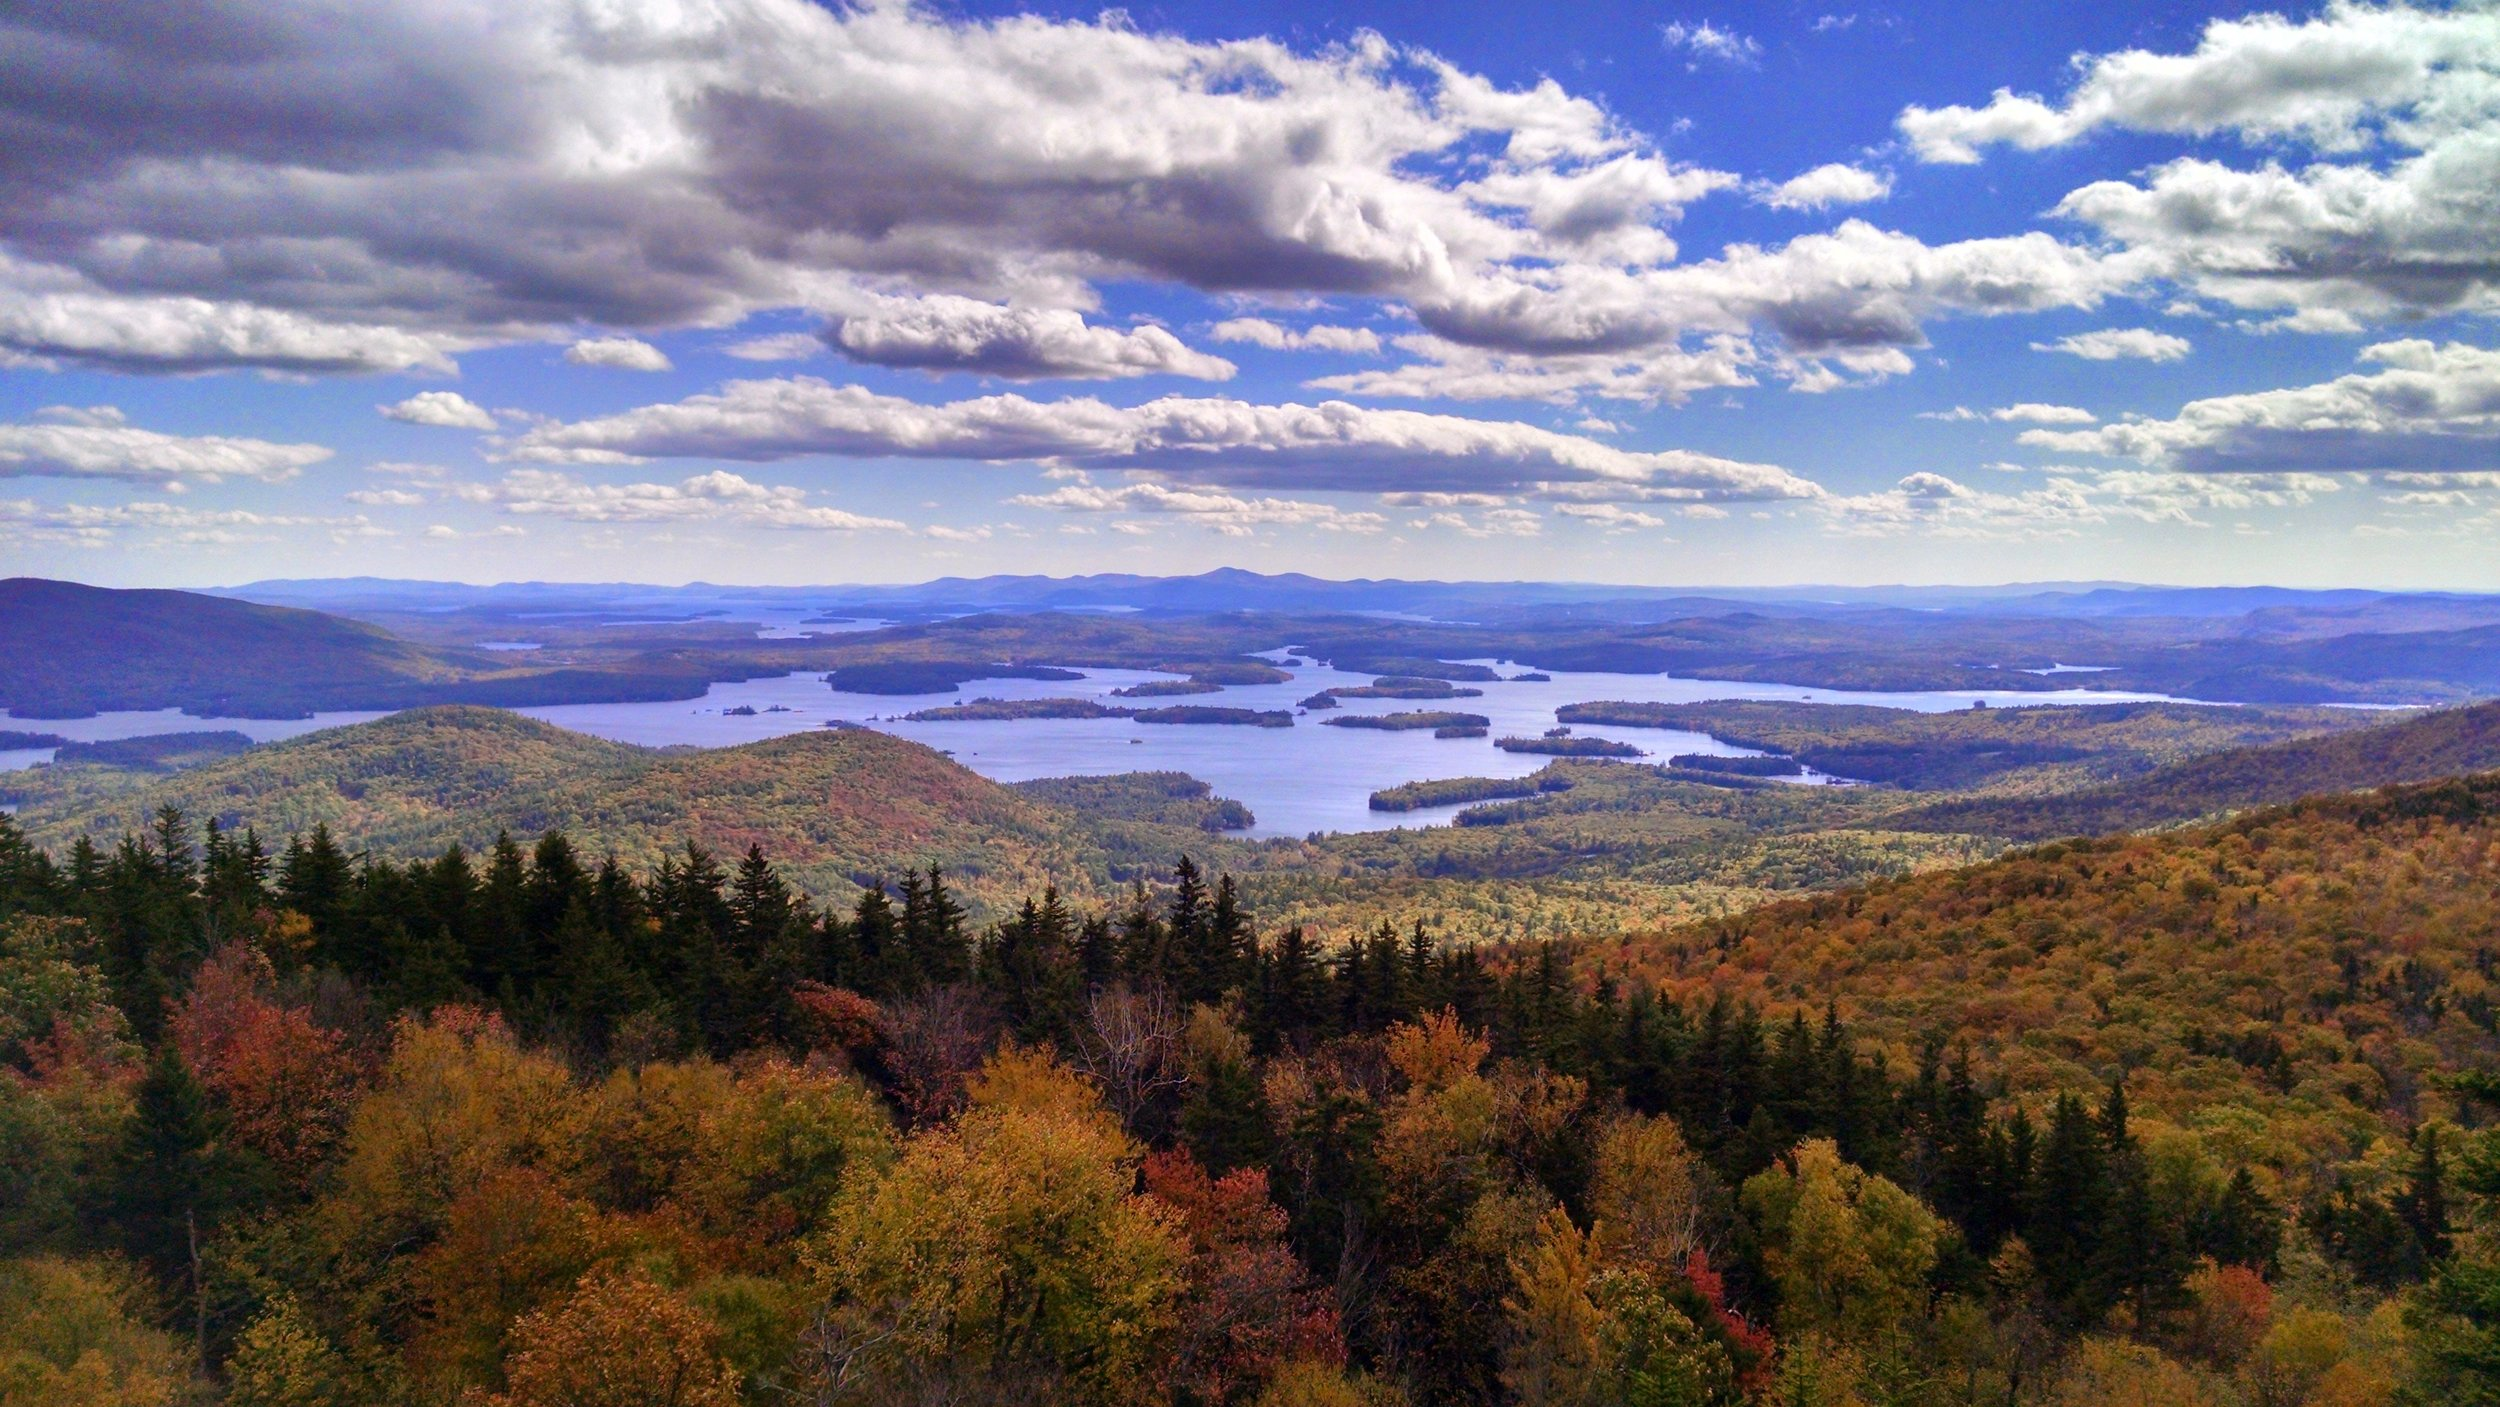 Squam Lake as seen from a mountain peak.